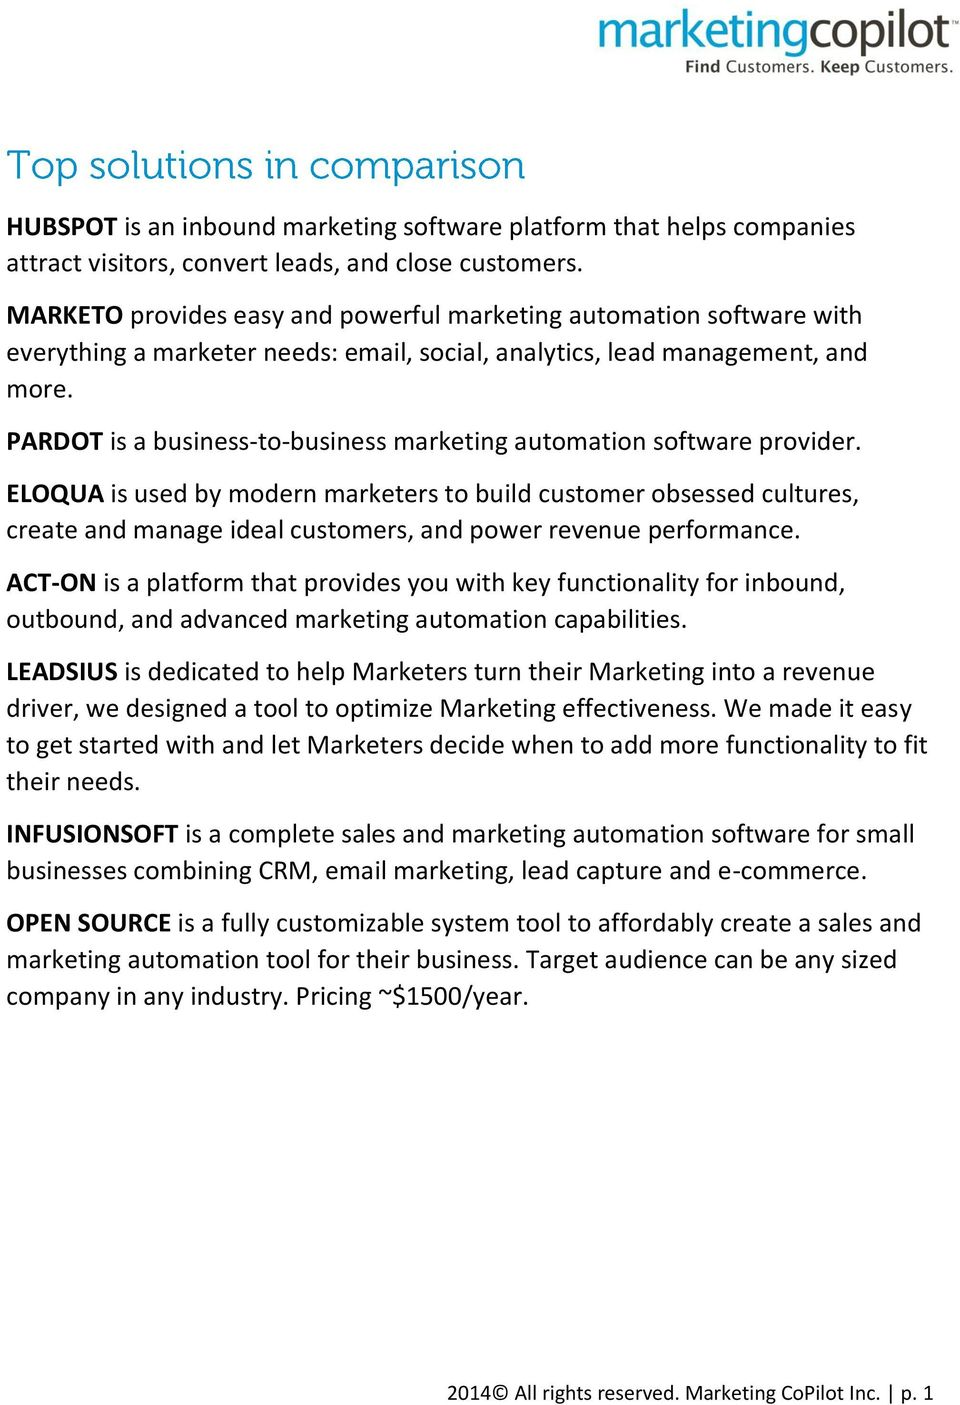 PARDOT is a business-to-business automation software provider. ELOQUA is used by modern marketers to build customer obsessed cultures, create and manage ideal customers, and power revenue performance.